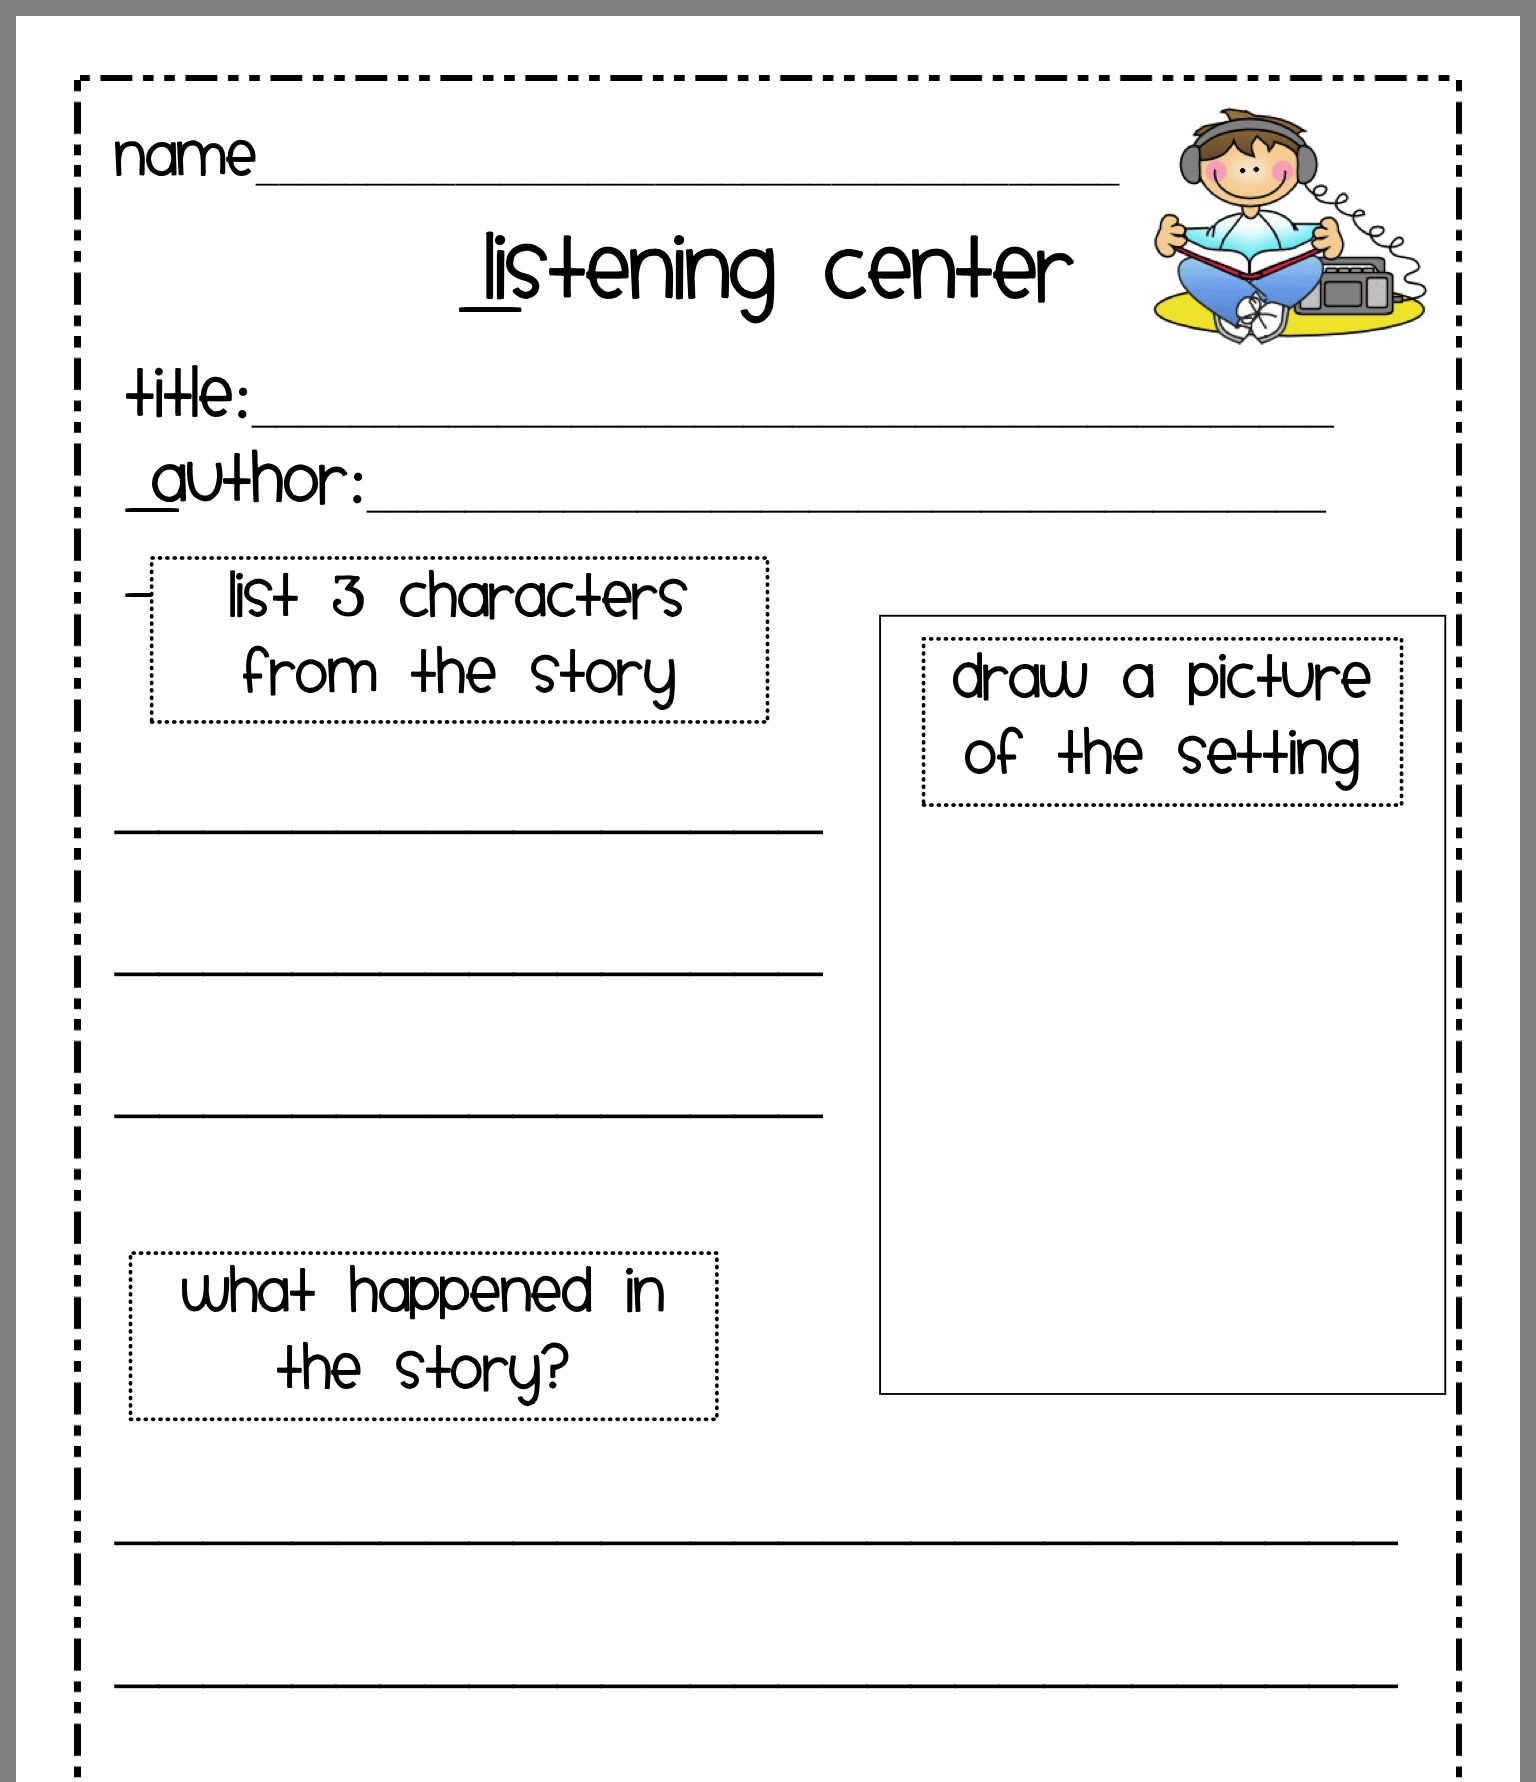 Pin By Mindy On Listening Center Ideas